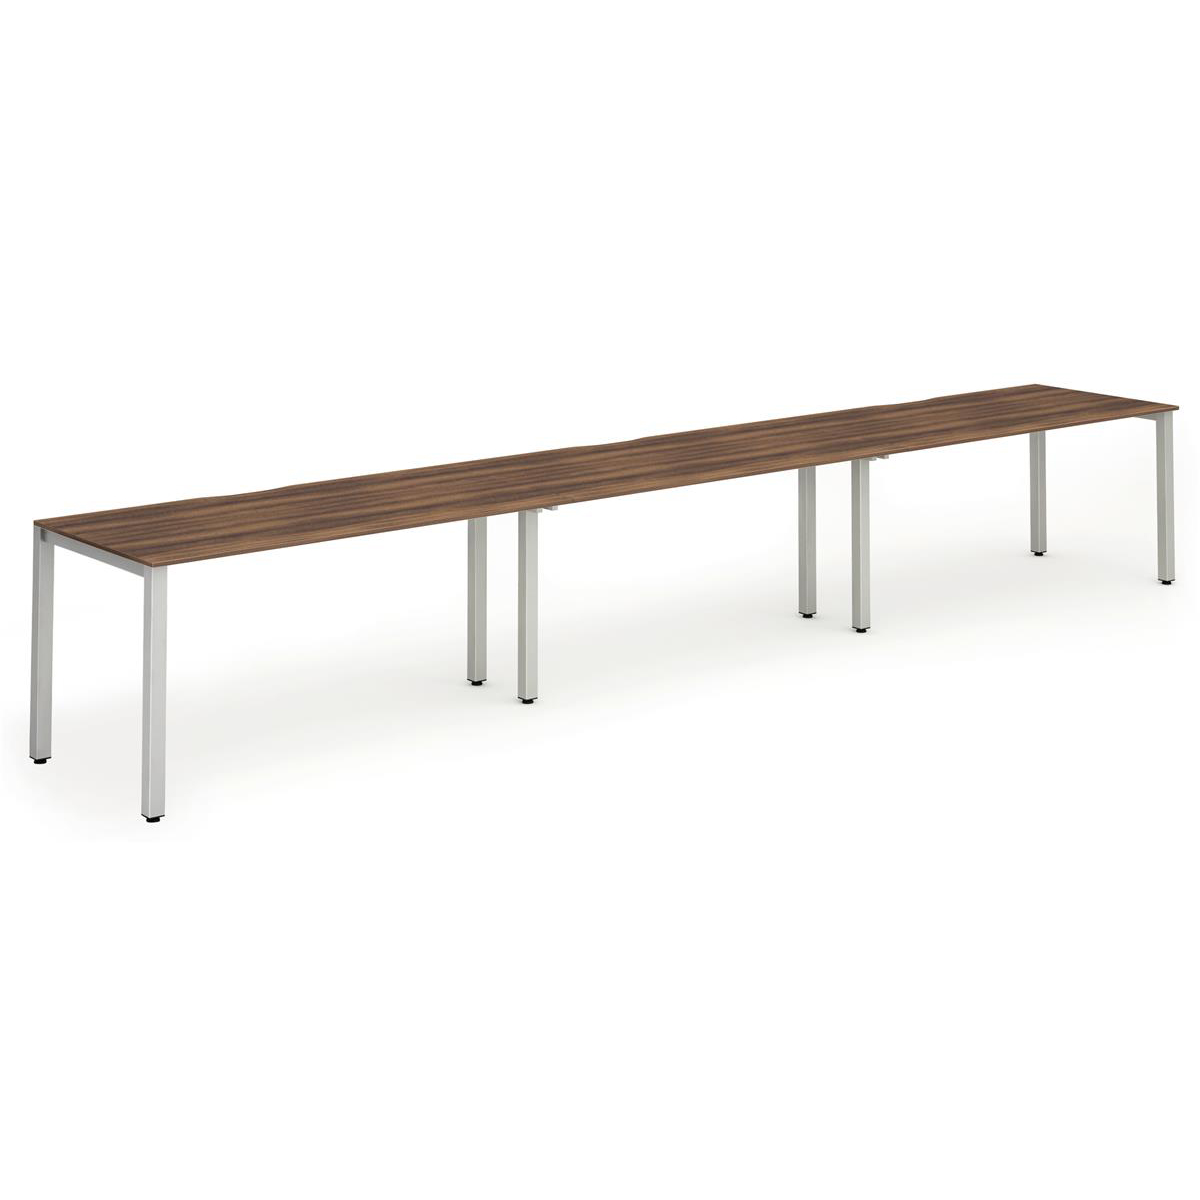 Trexus Bench Desk 3 Person Side to Side Configuration Silver Leg 4800x800mm Walnut Ref BE409